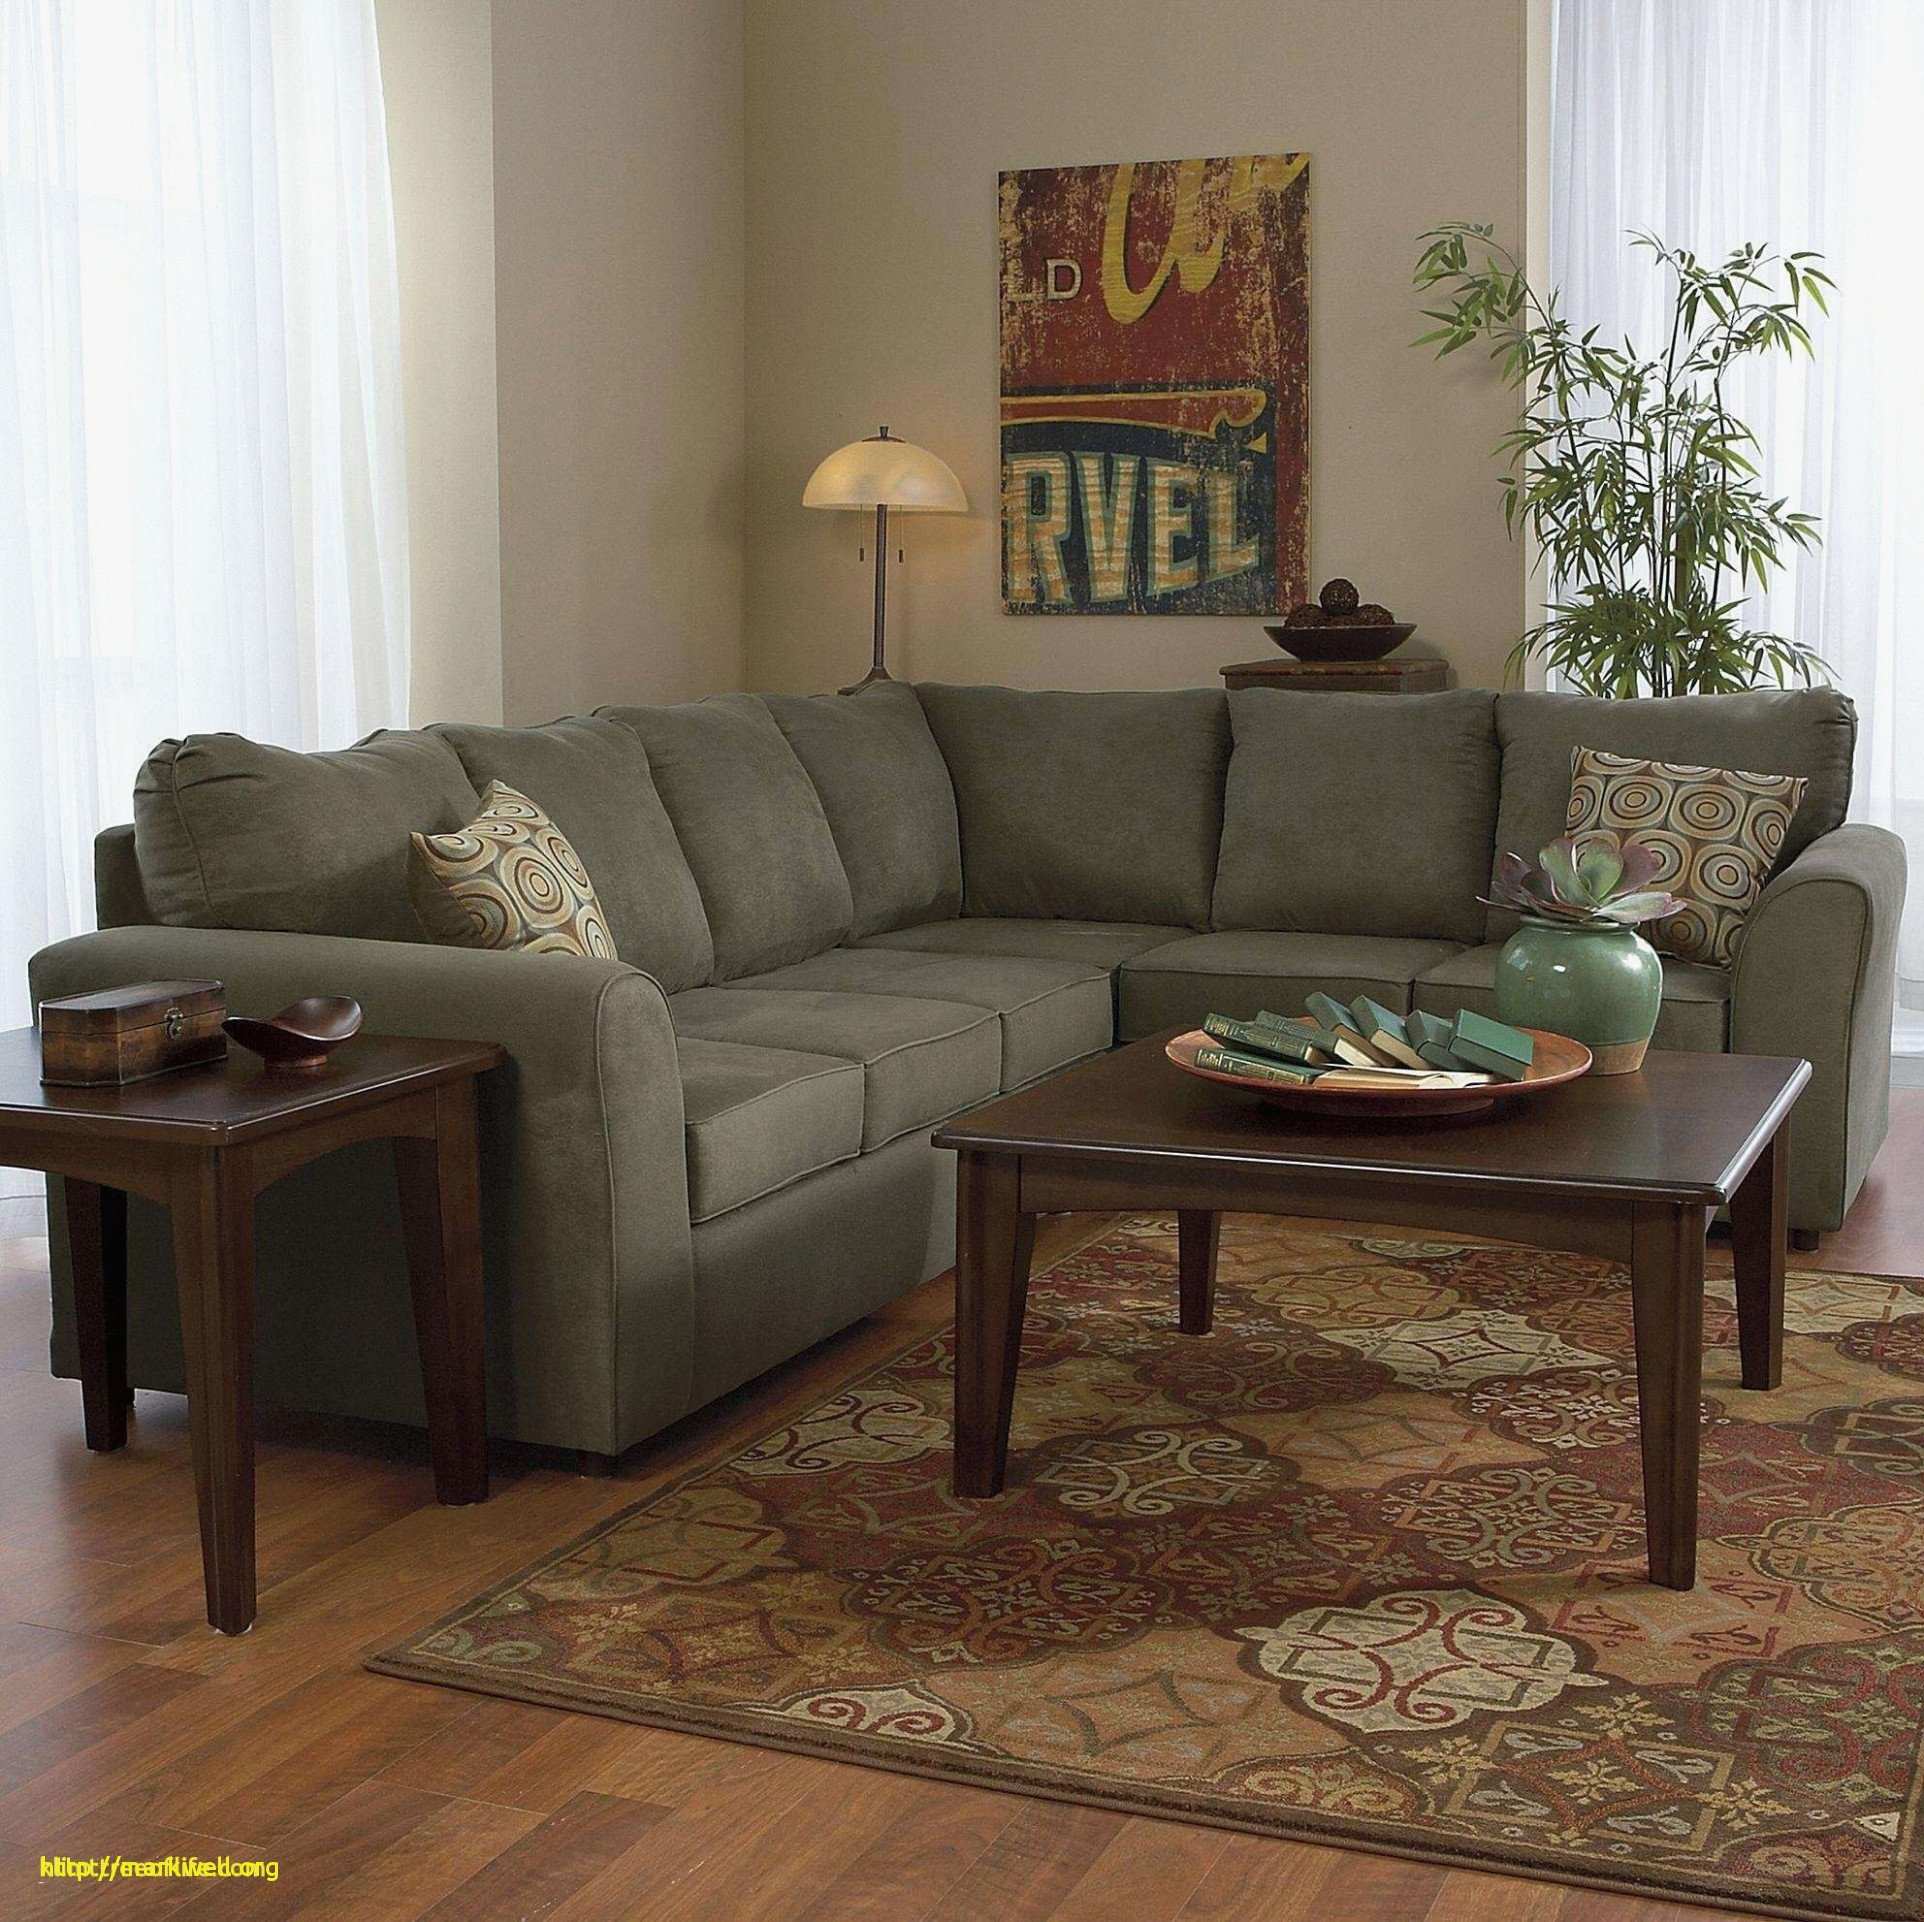 Best Place to Buy Bedroom Furniture Fresh Unique Living Room Accent Furniture